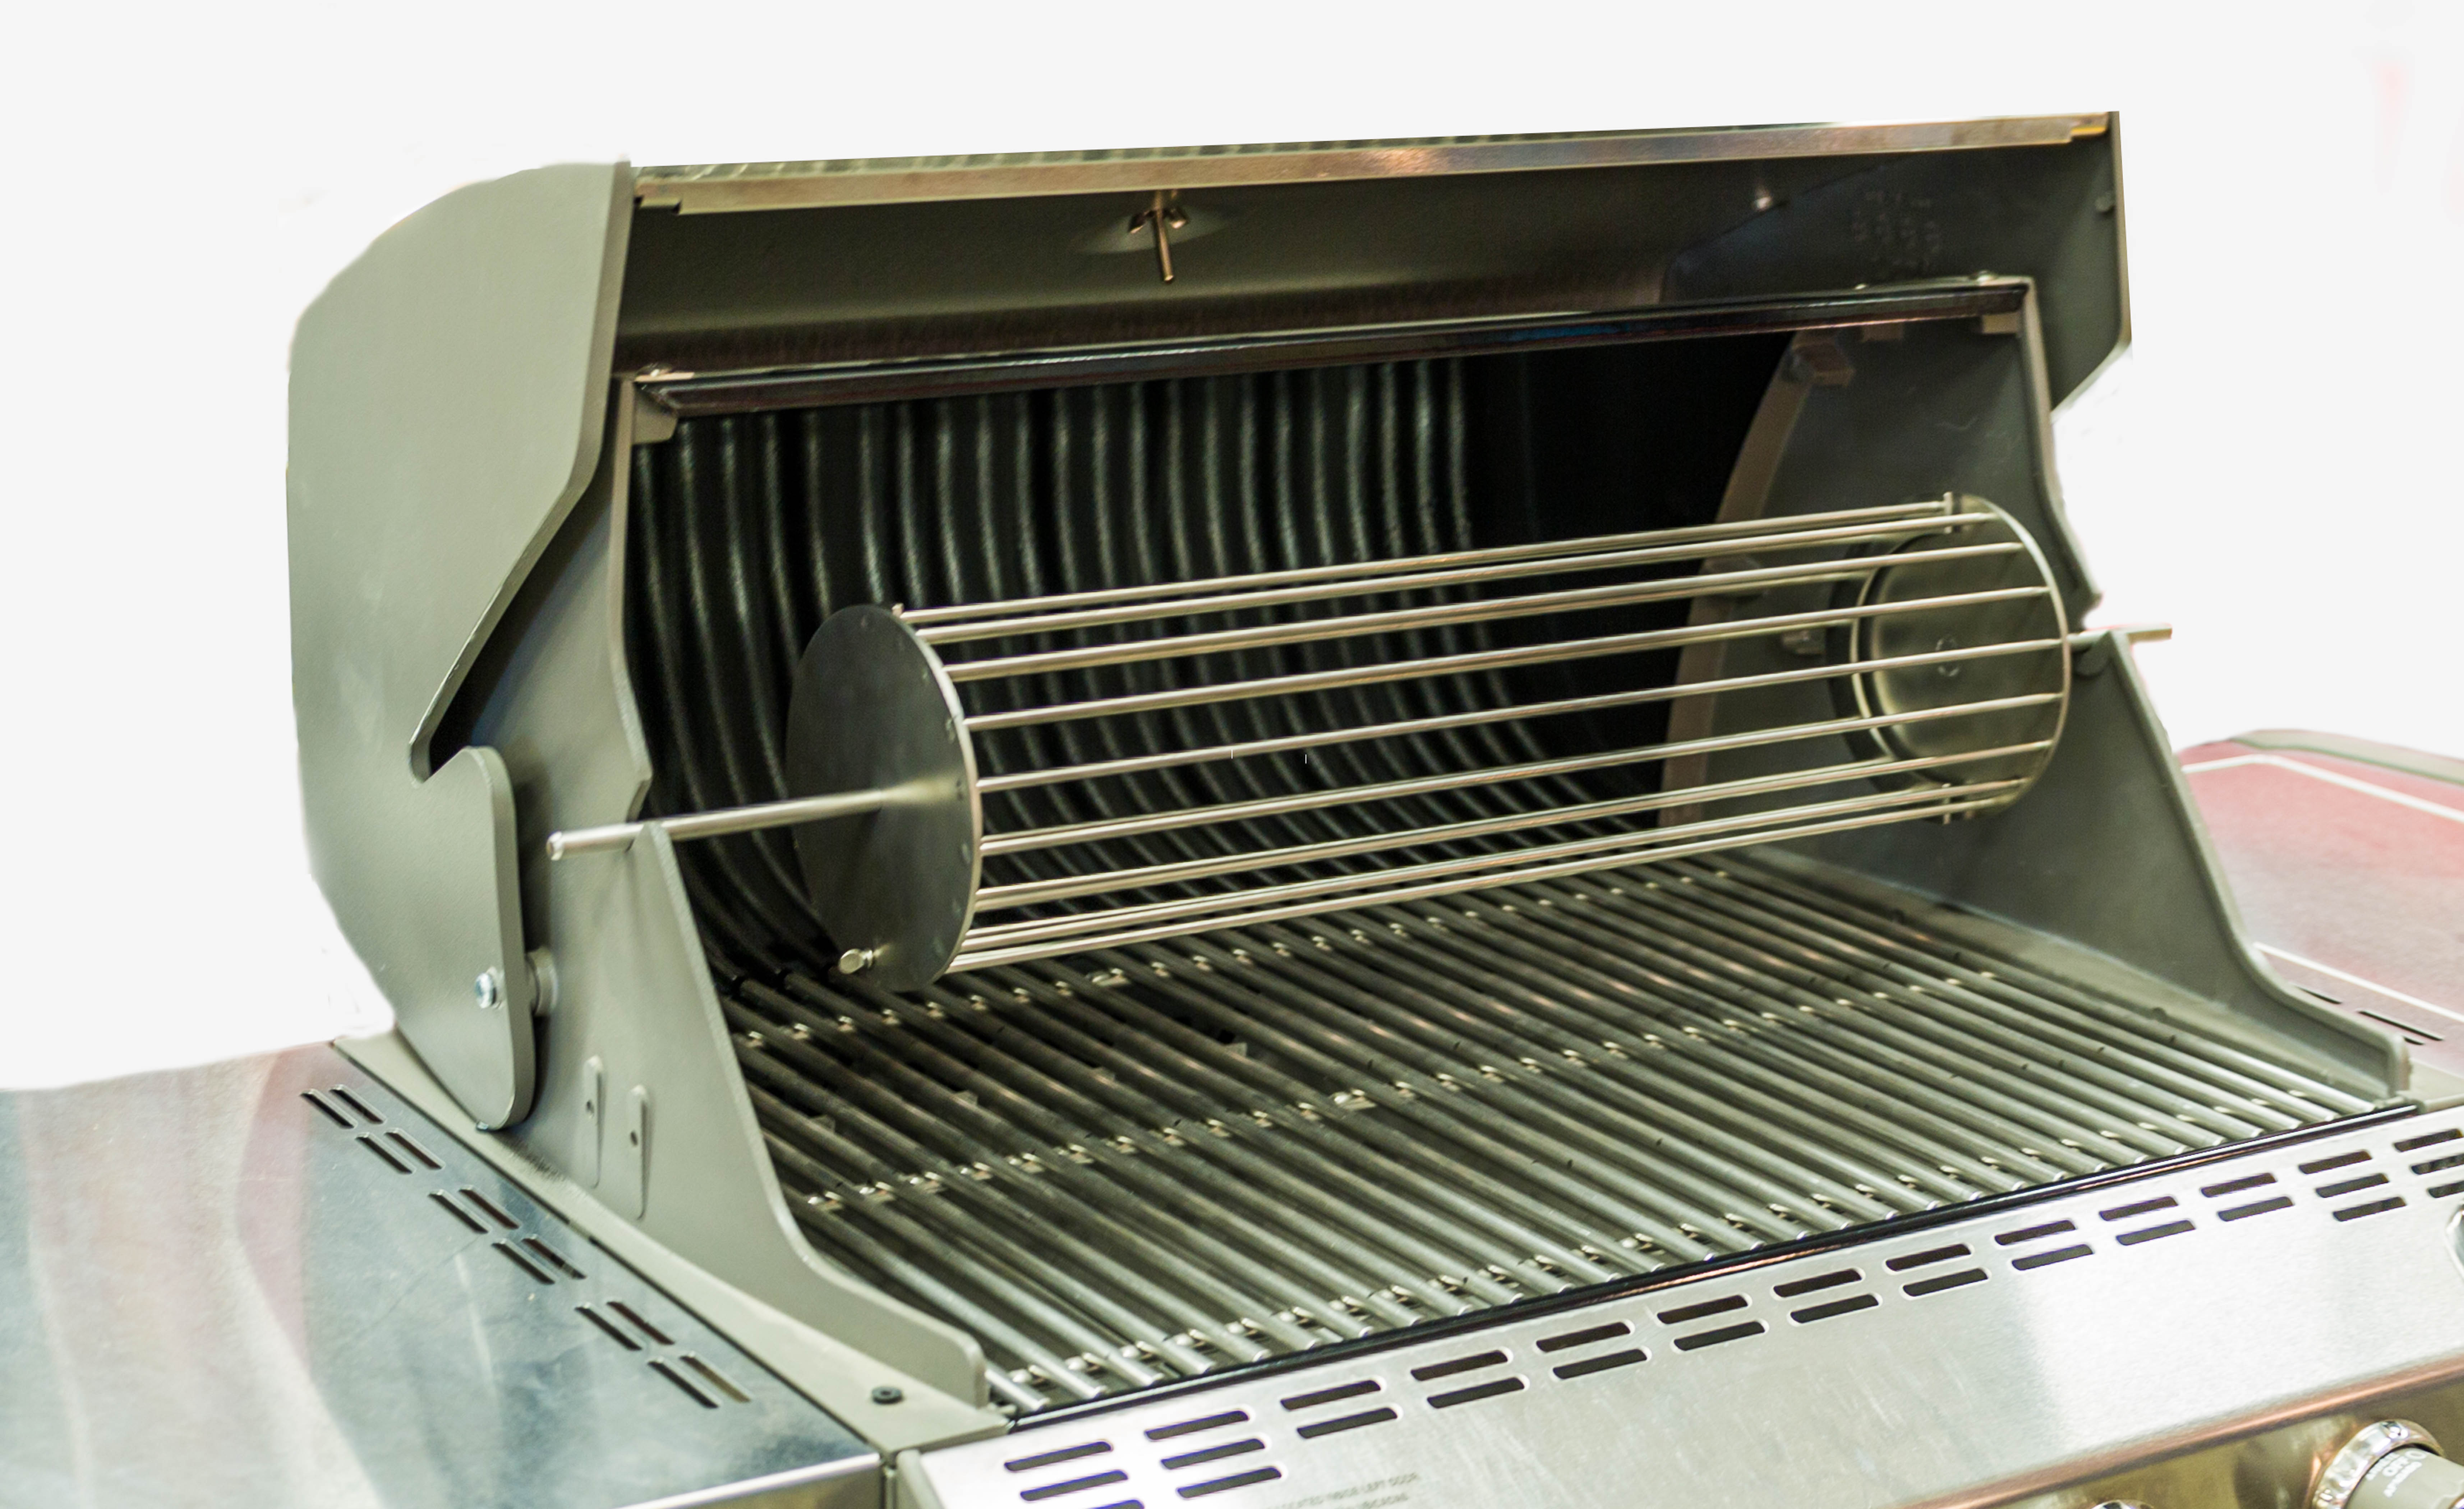 Rotisserie on Grill